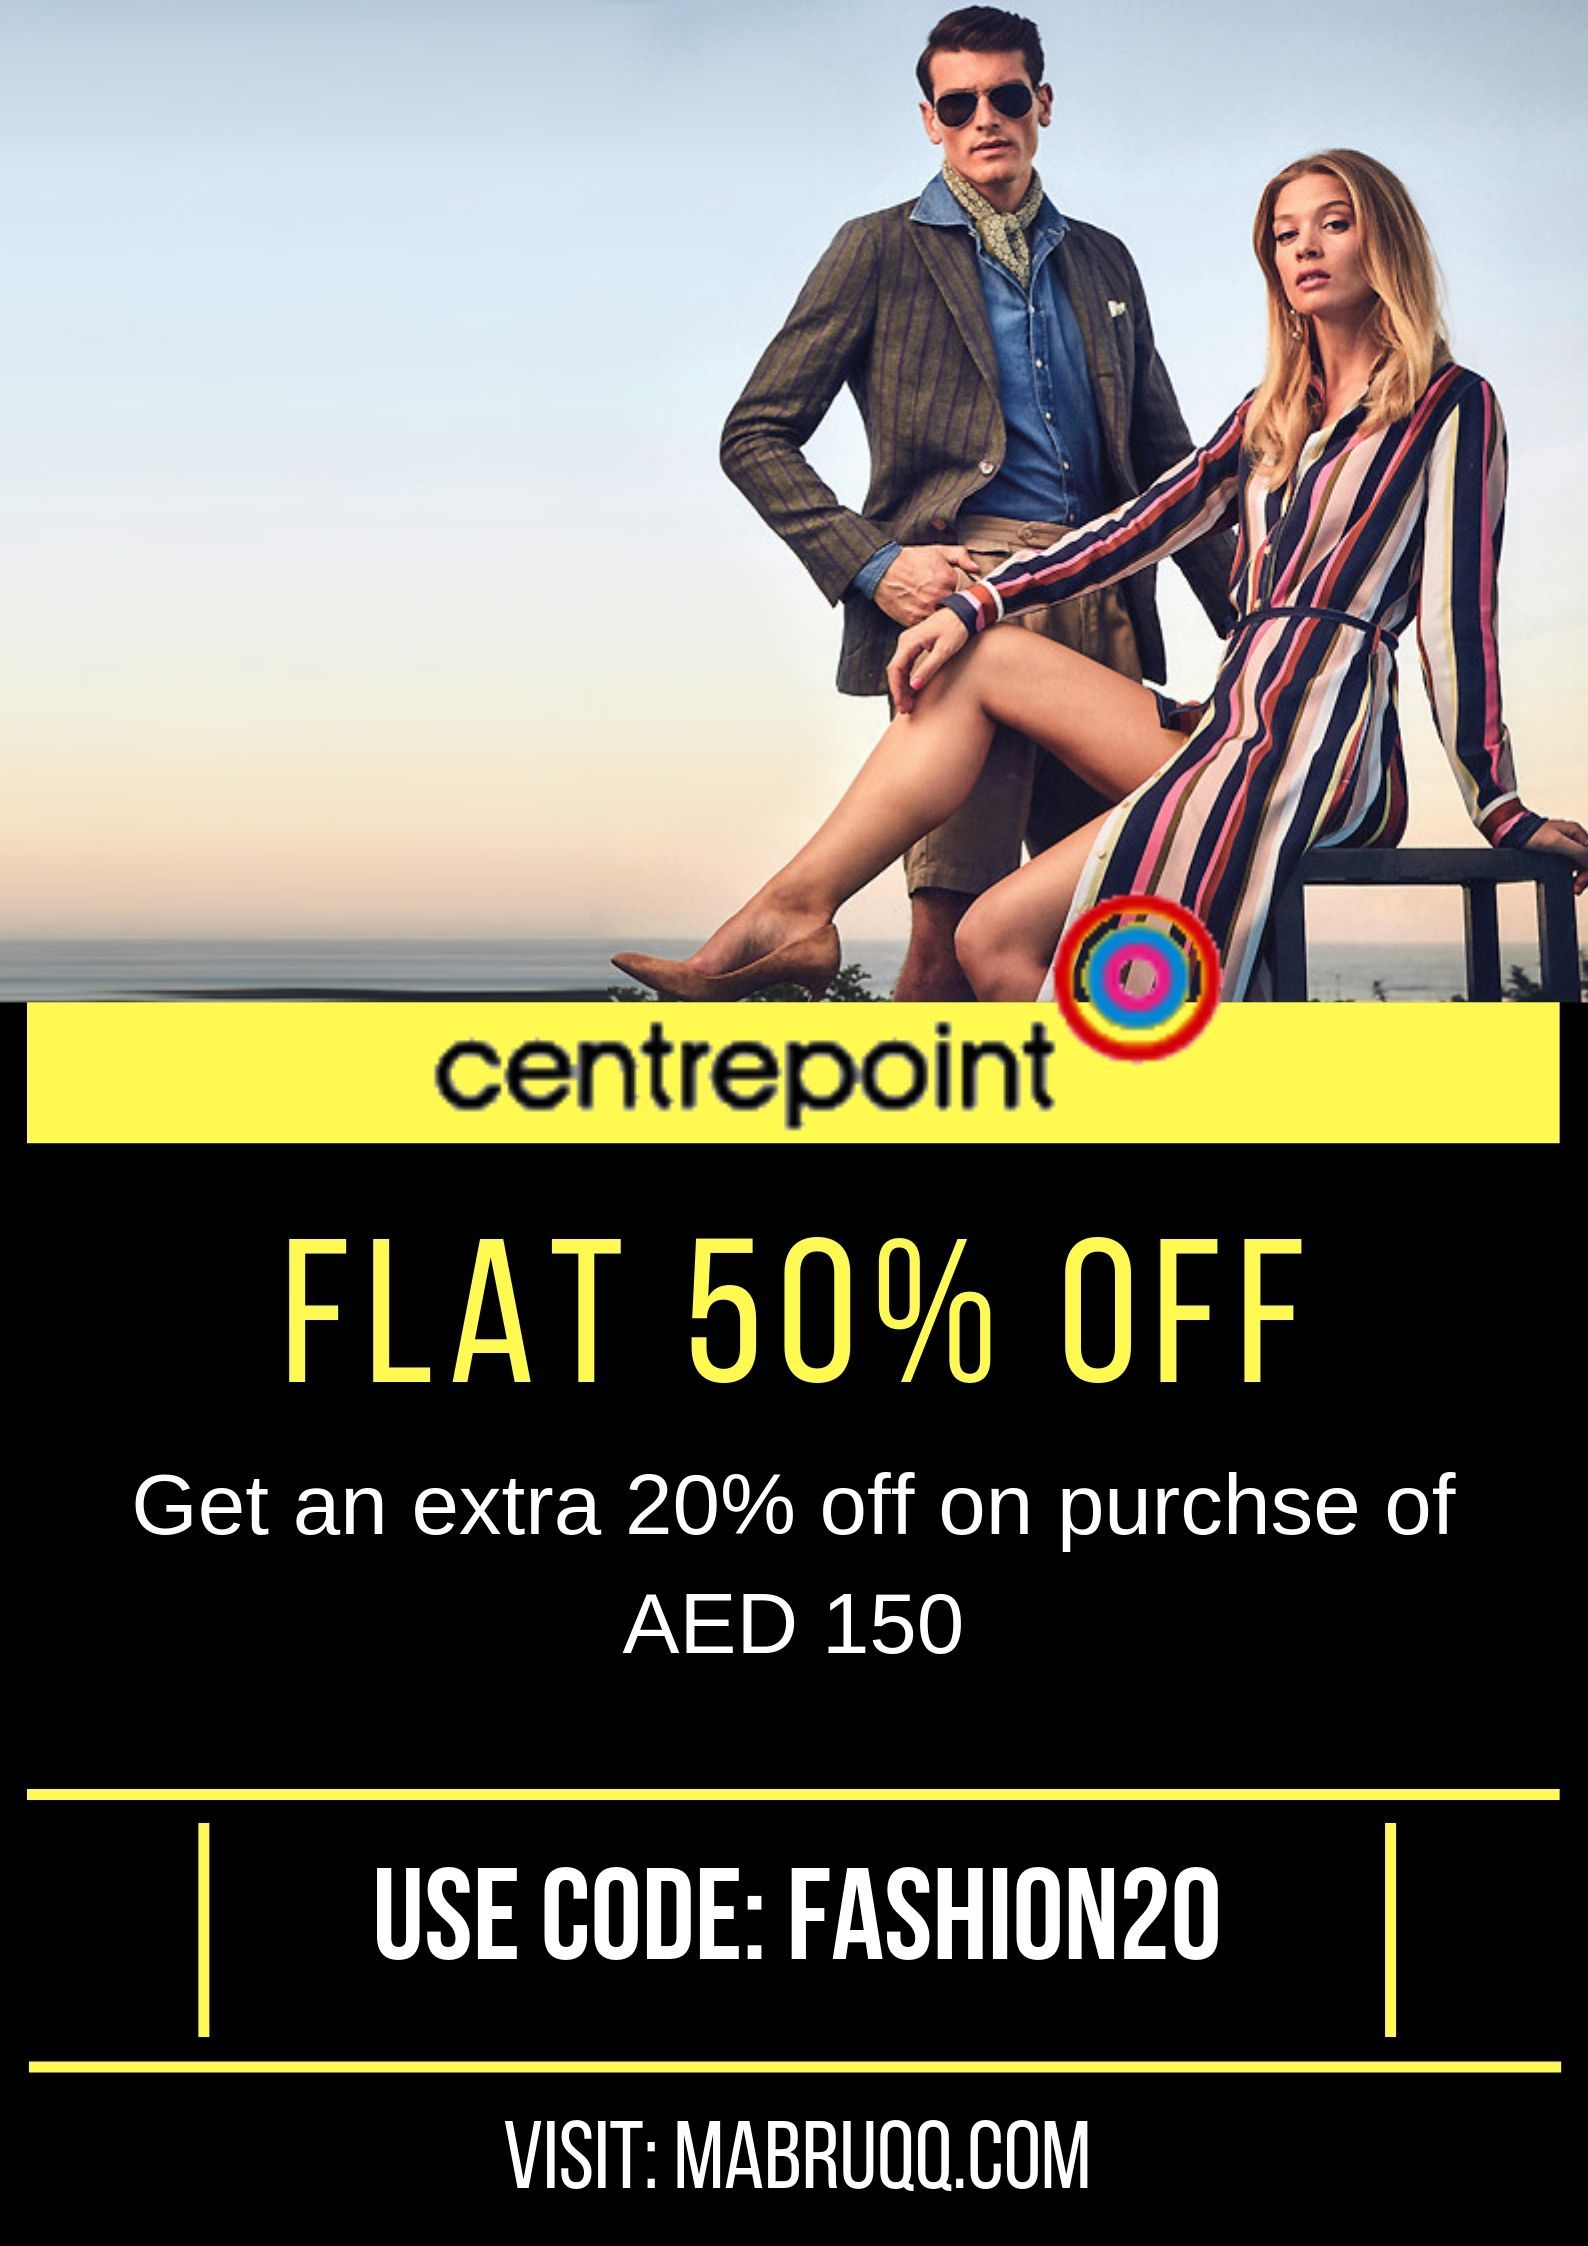 Shop summer collection from centrepoint and get flat 50